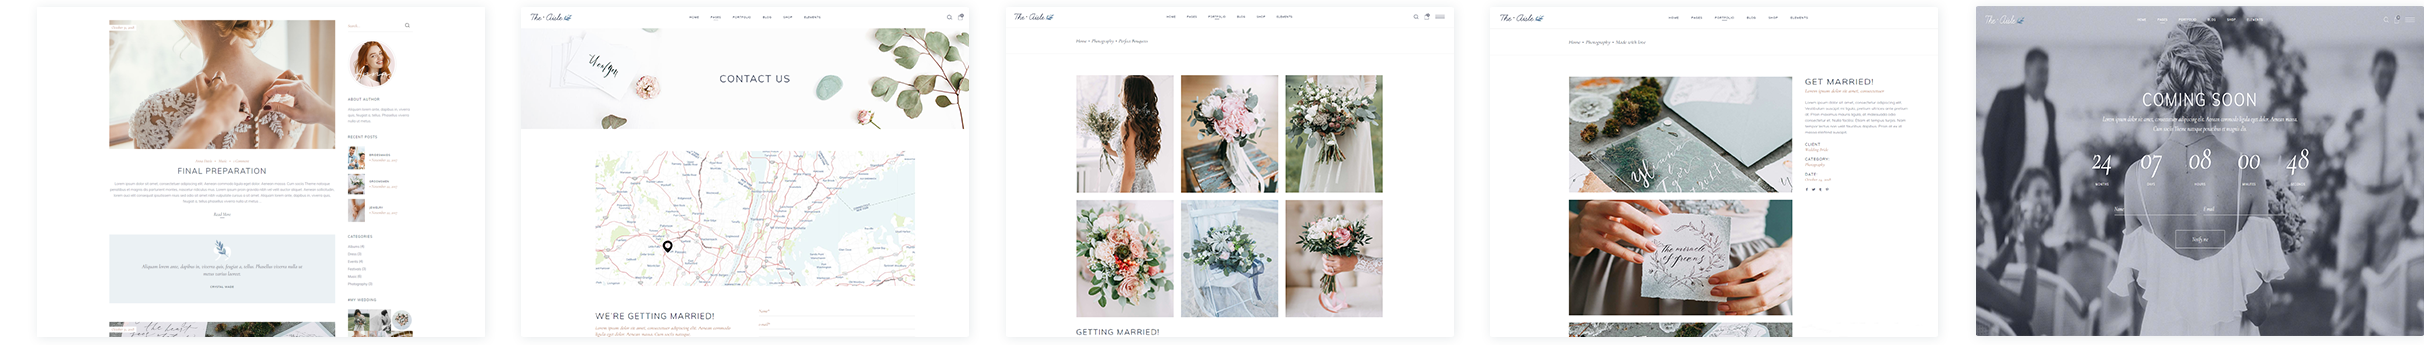 landing-innerpages-3